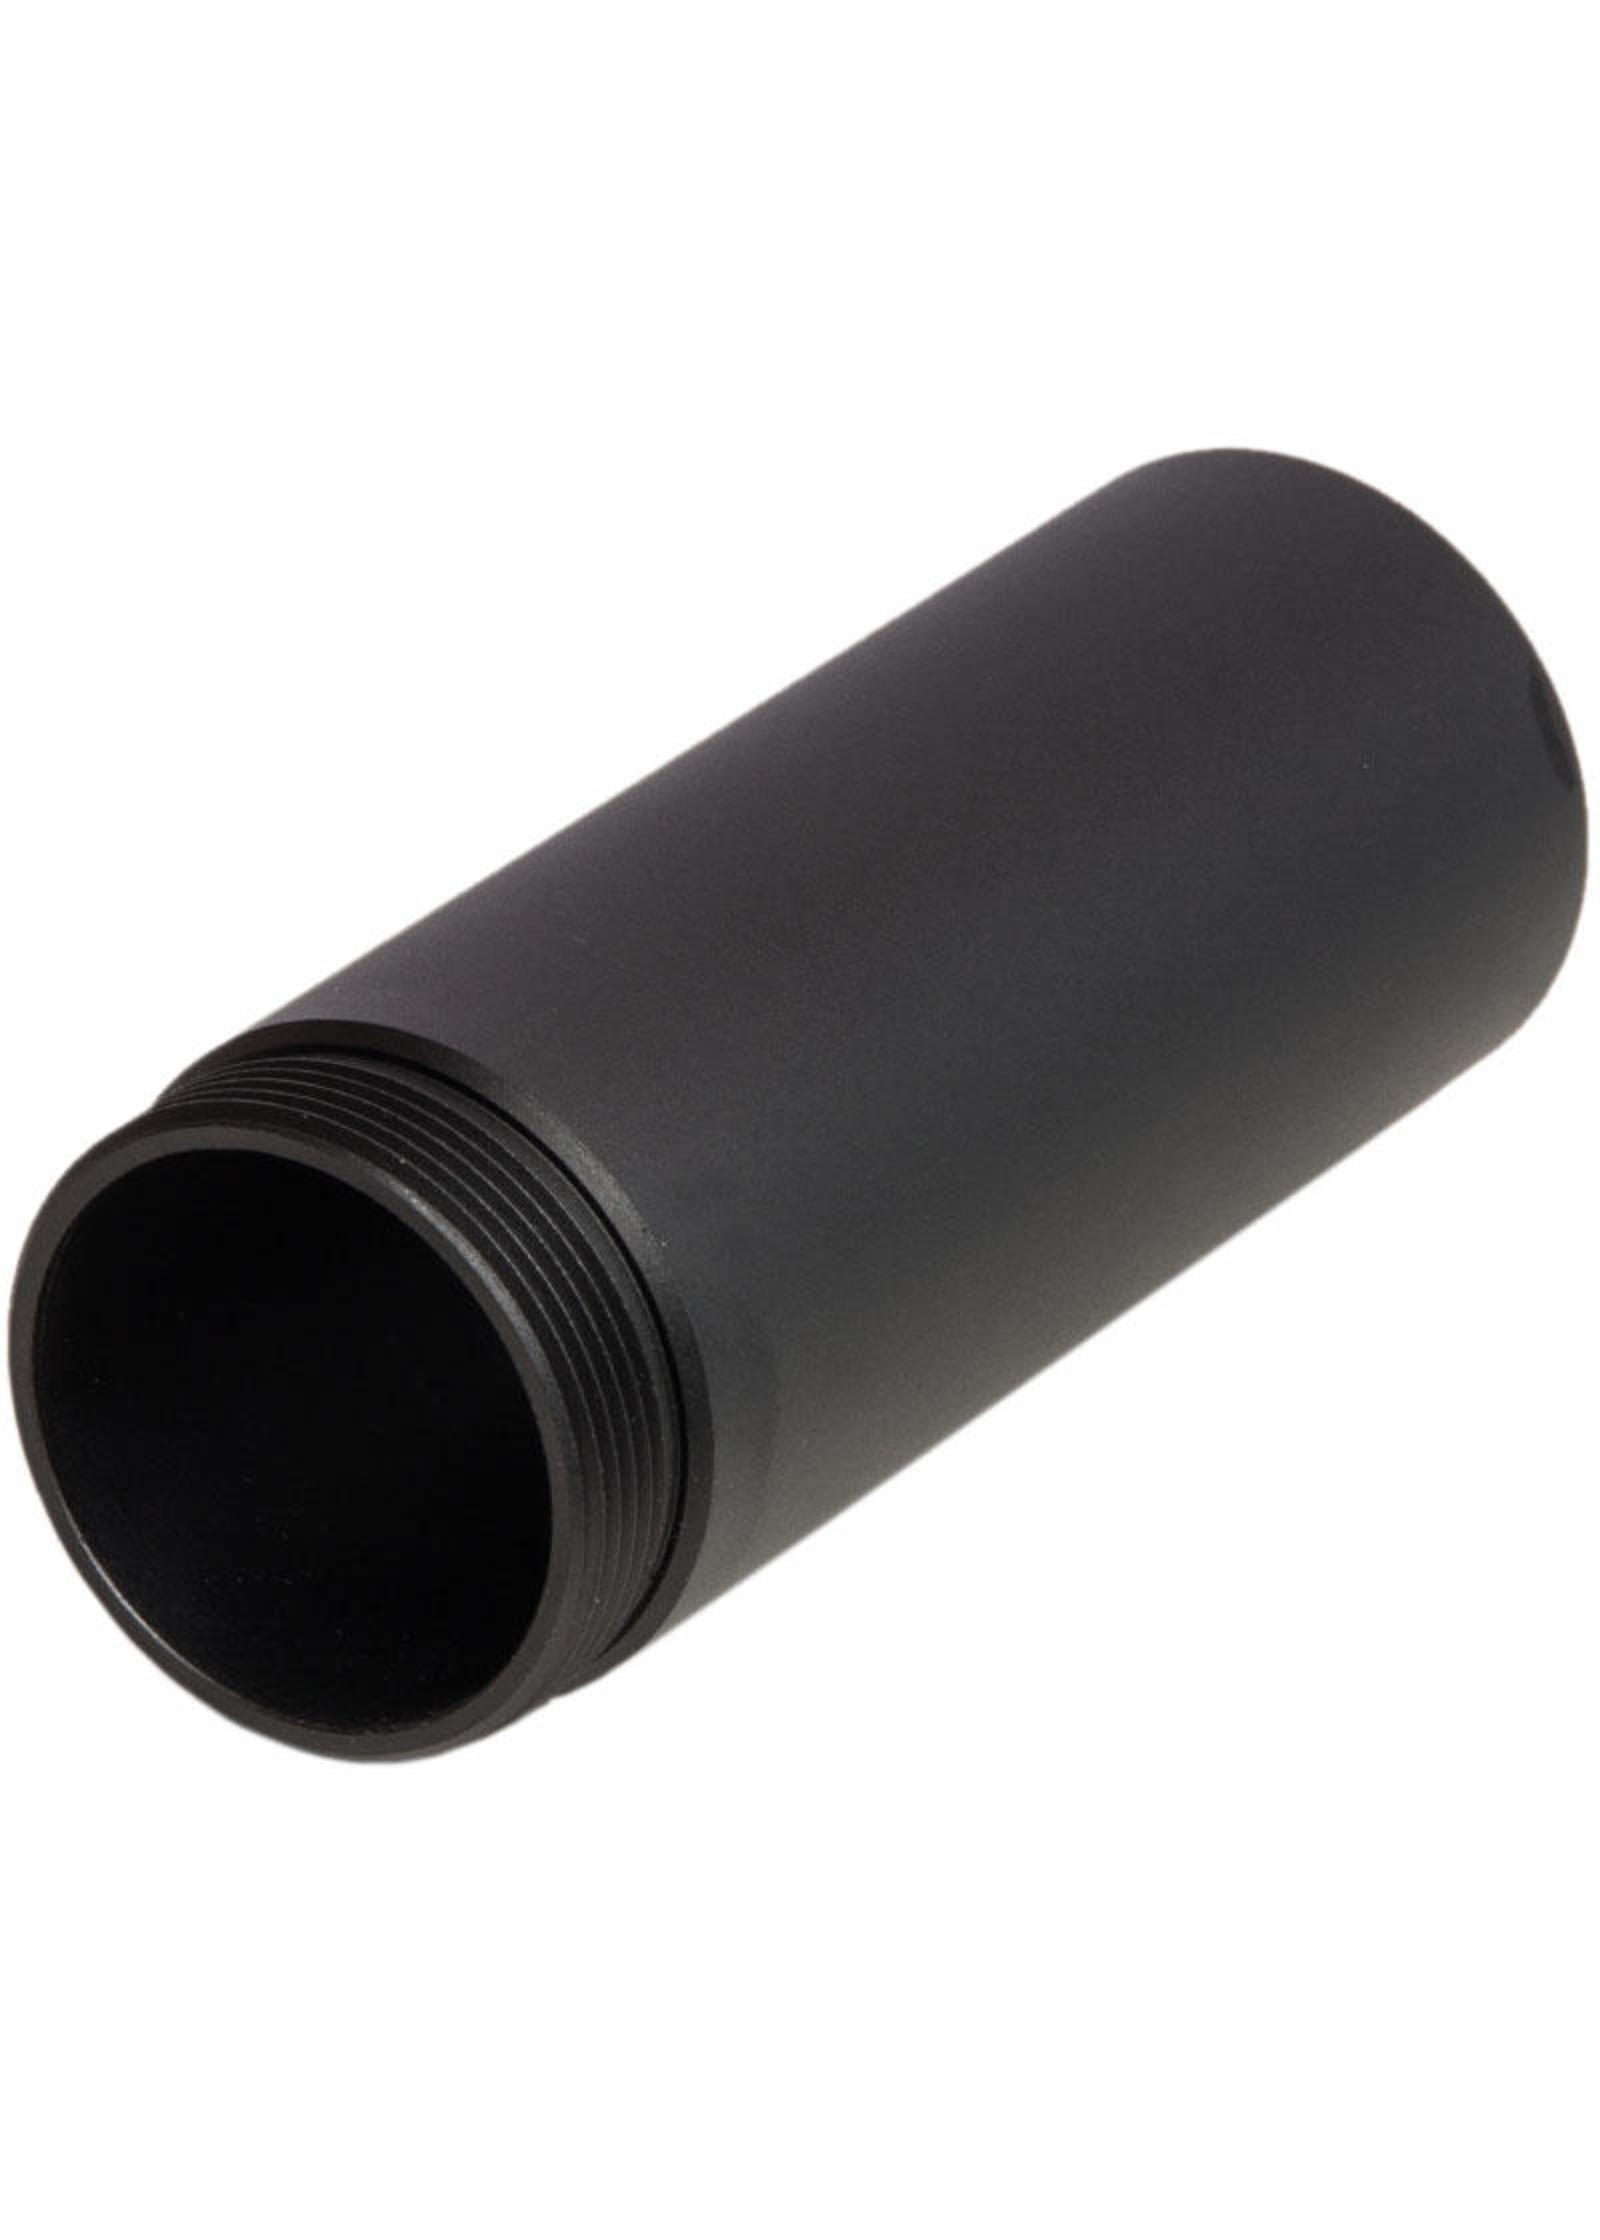 Airtech Studios SEU Suppressor Extension Kit for AM-013/014 407mm product image